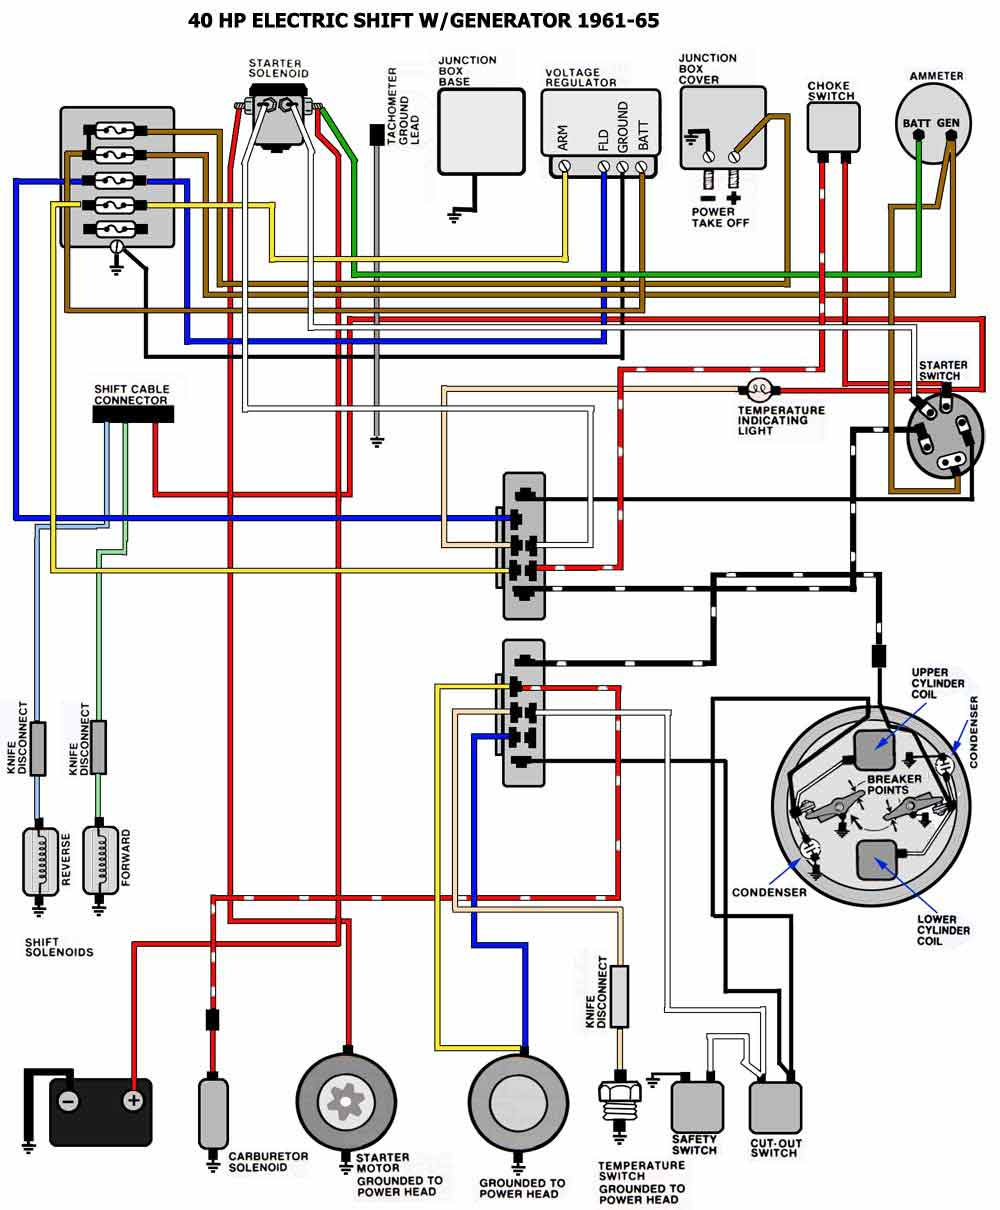 1967 johnson outboard wiring diagram wiring diagram rh 30 fomly be